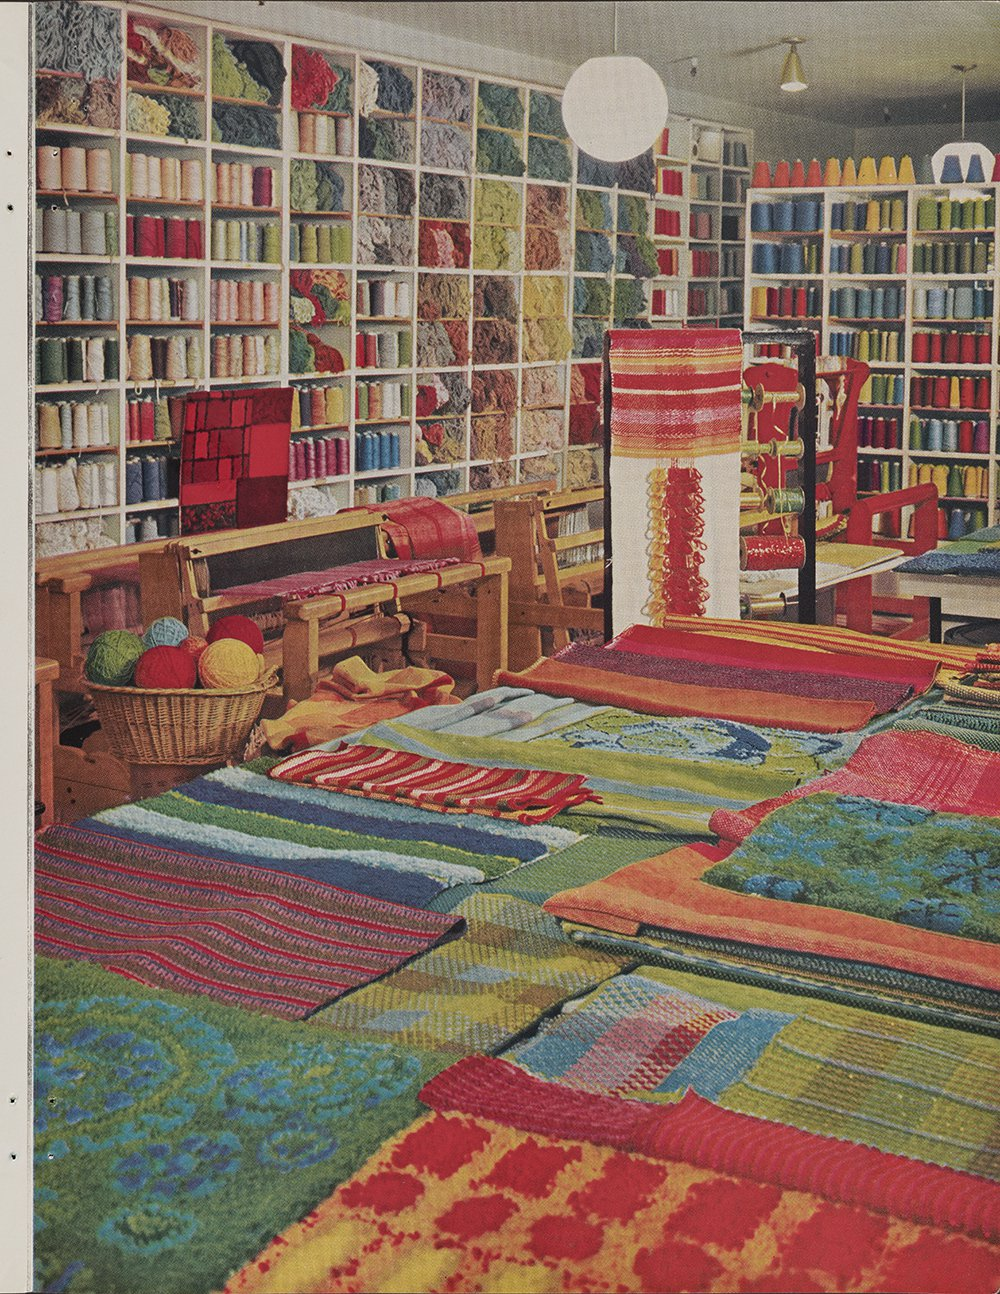 Textile showroom with ceiling-high shelves with yarn and thread lining the walls and layers of colorful rugs displayed on the floor.